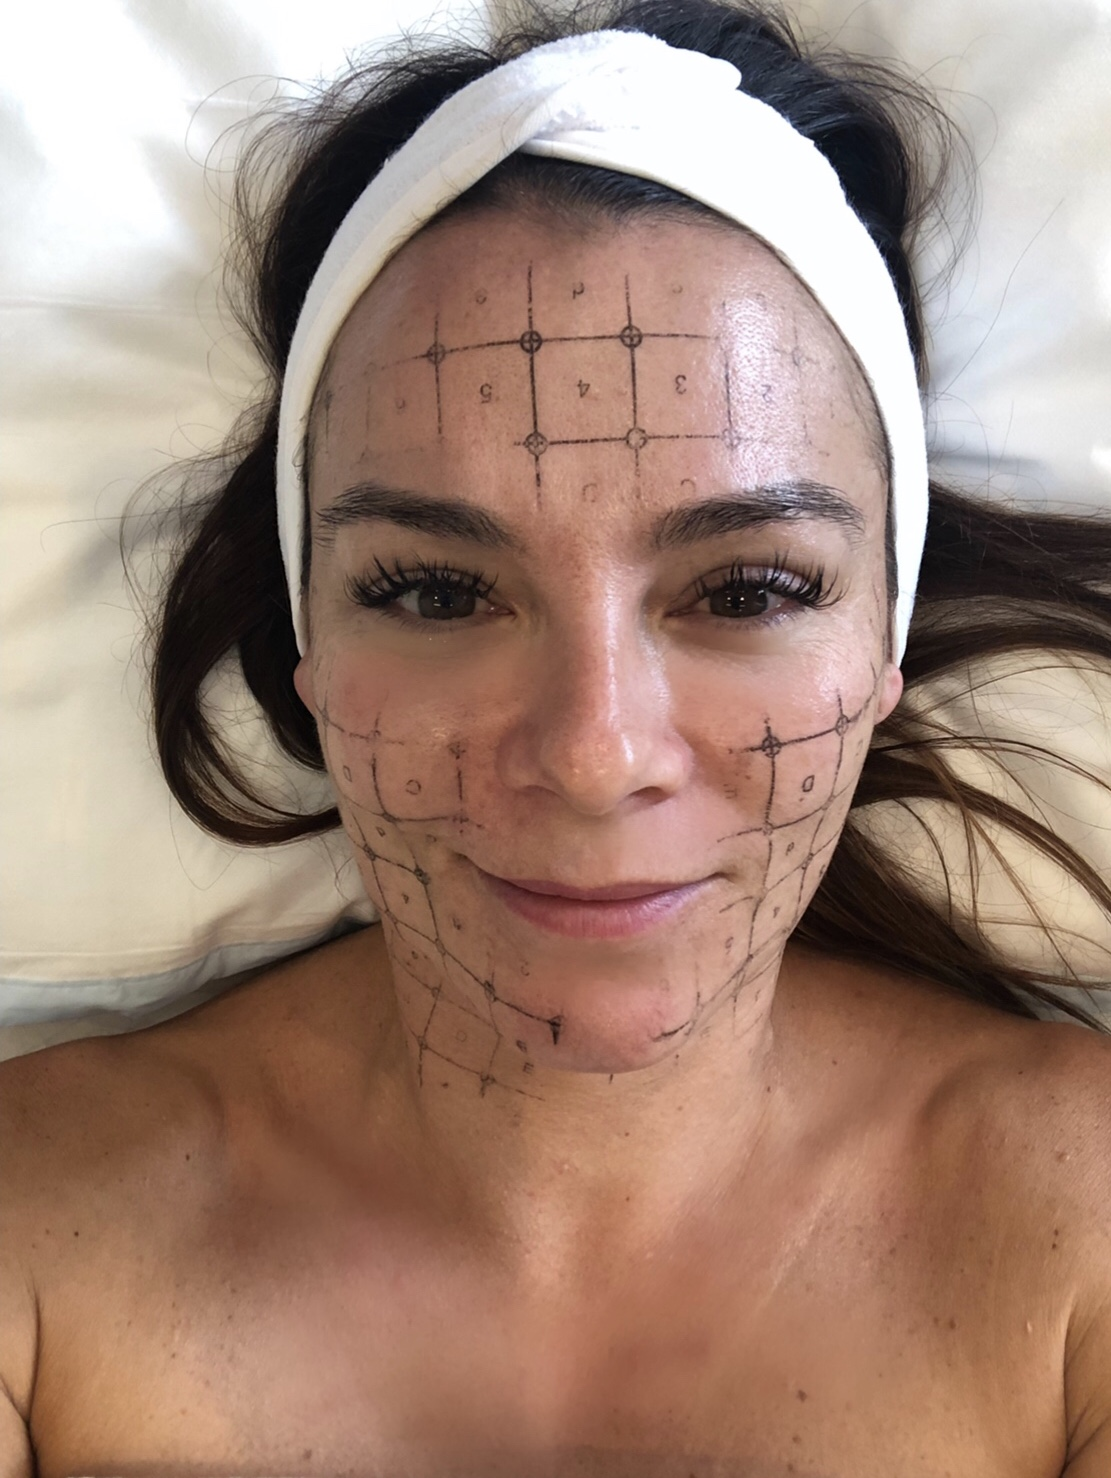 Road test- and Review of Thermage FLX non-surgical face lift